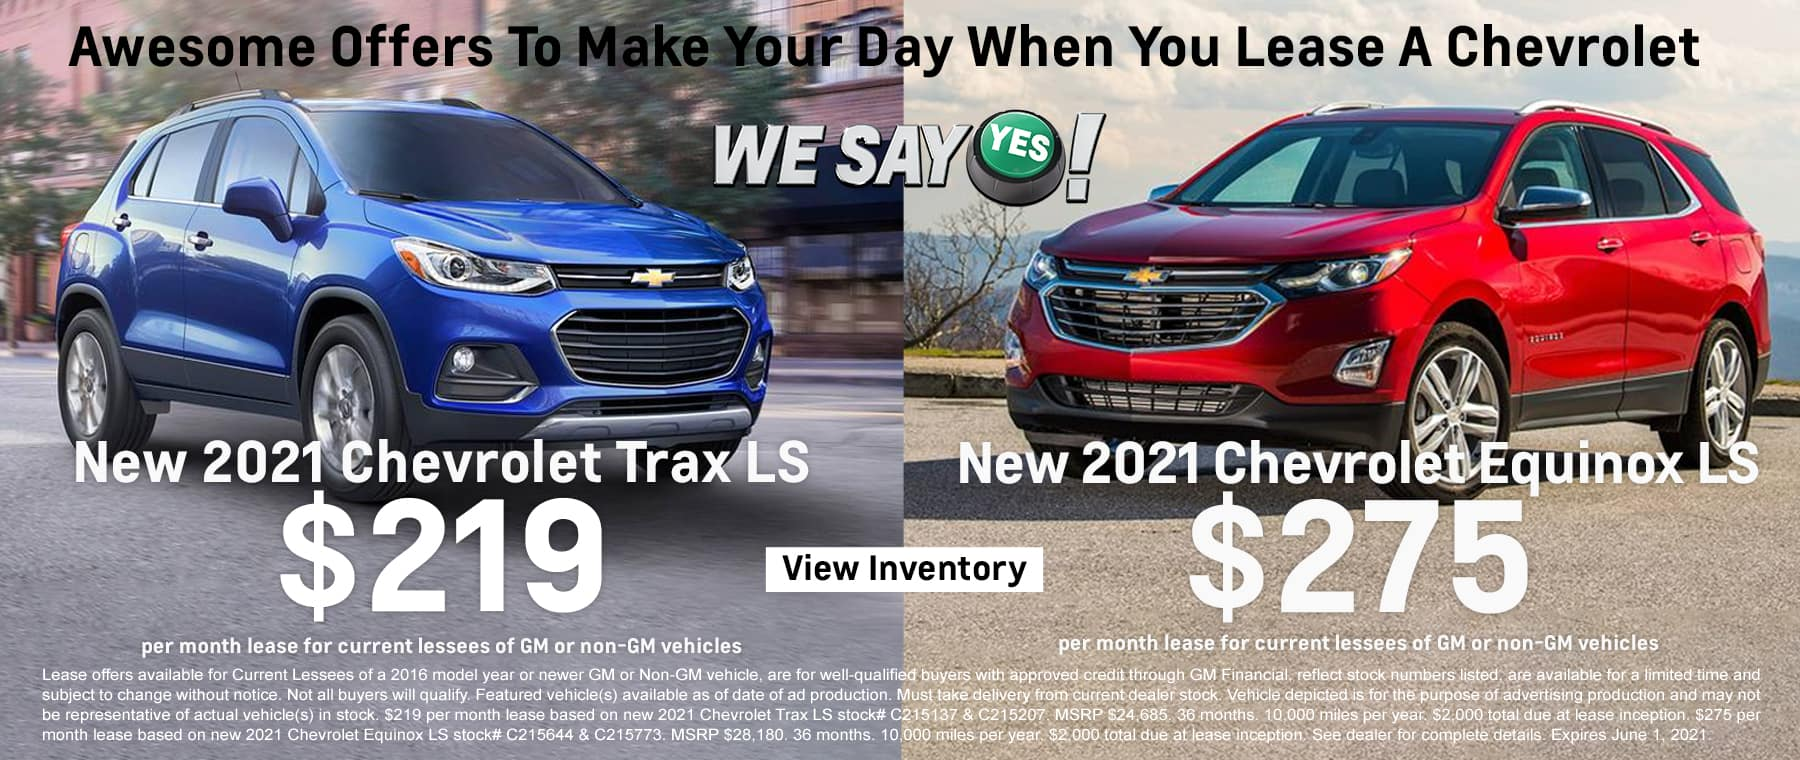 New 2021 Chevrolet Trax LS - $219 month lease | New 2021 Chevrolet Equinox LS - $275 month lease